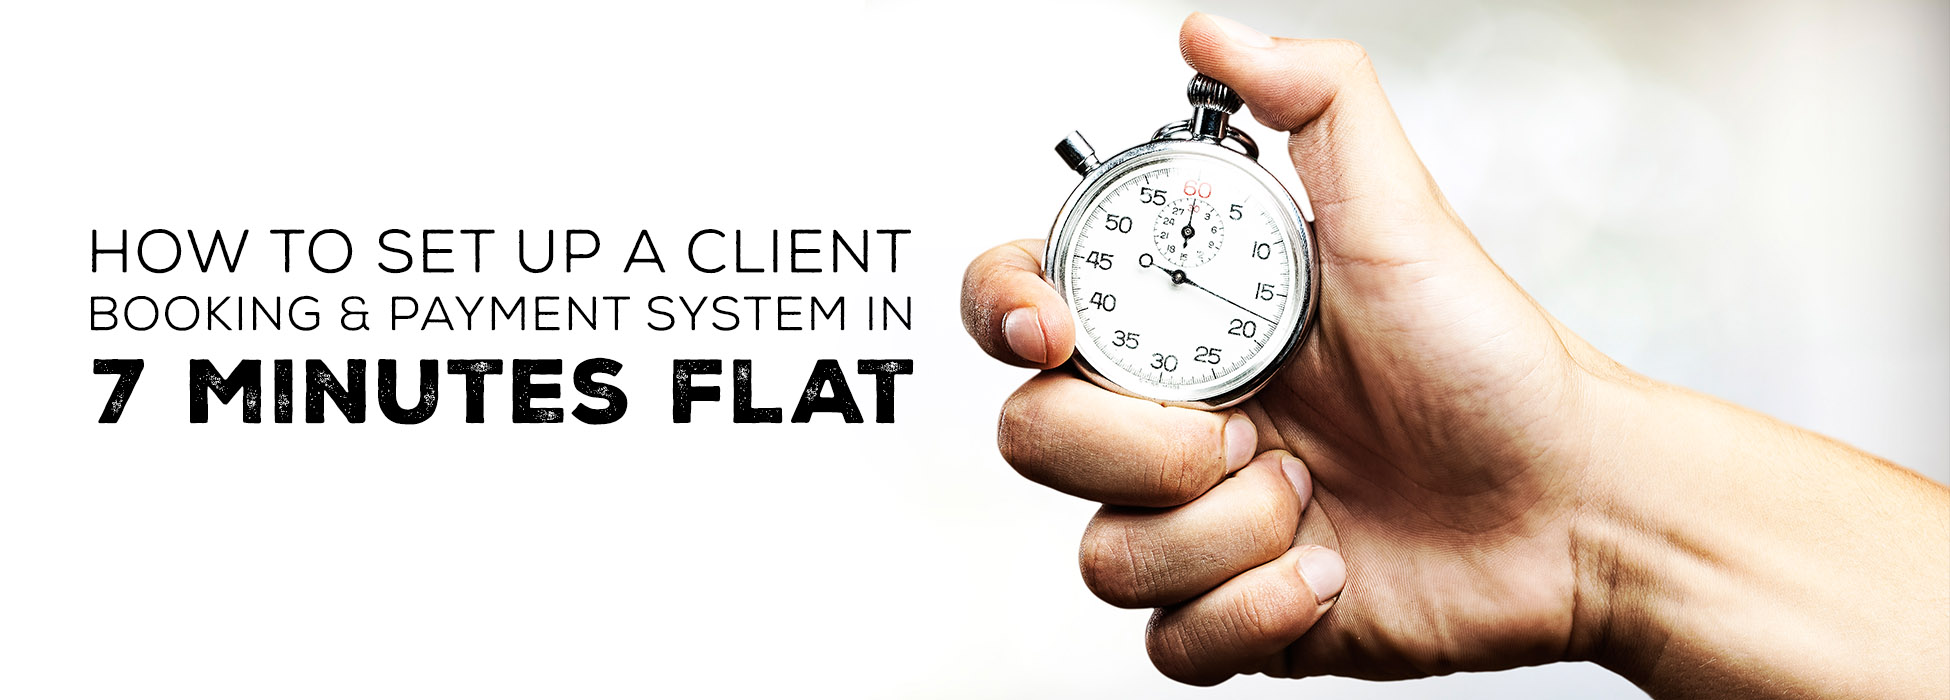 How to set up a client booking and payment system in 7 minutes flat